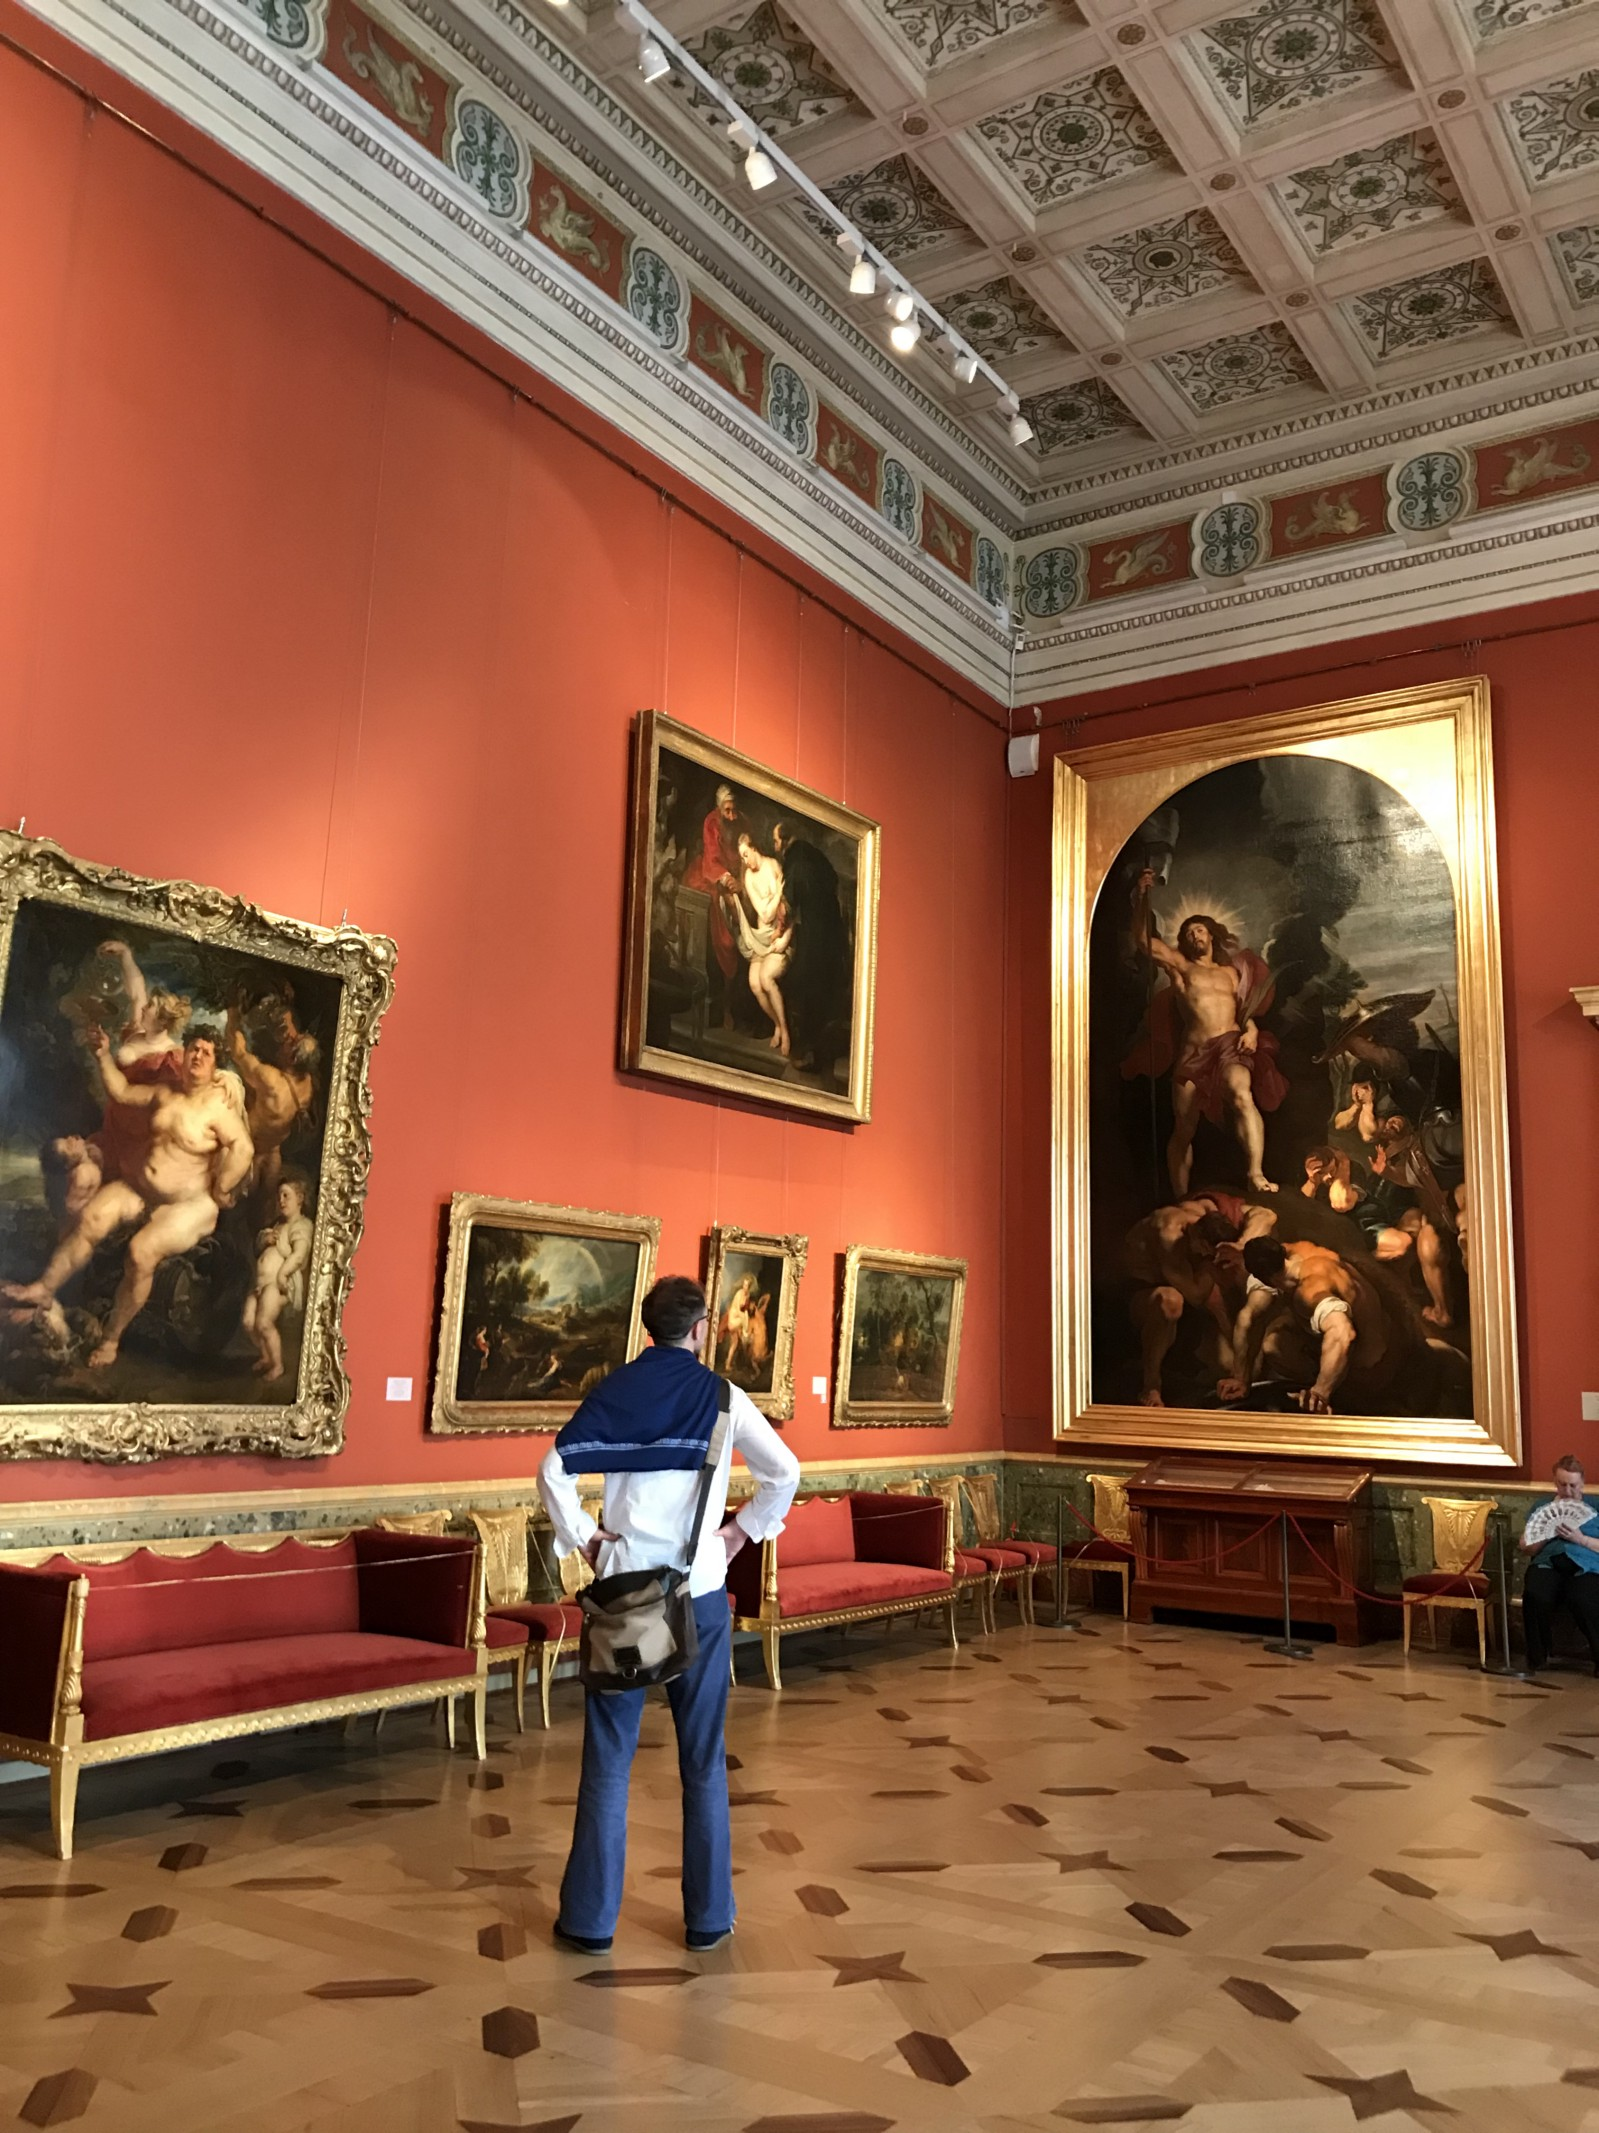 Andrey admires the artwork of Rubens inside The Hermitage Museum.